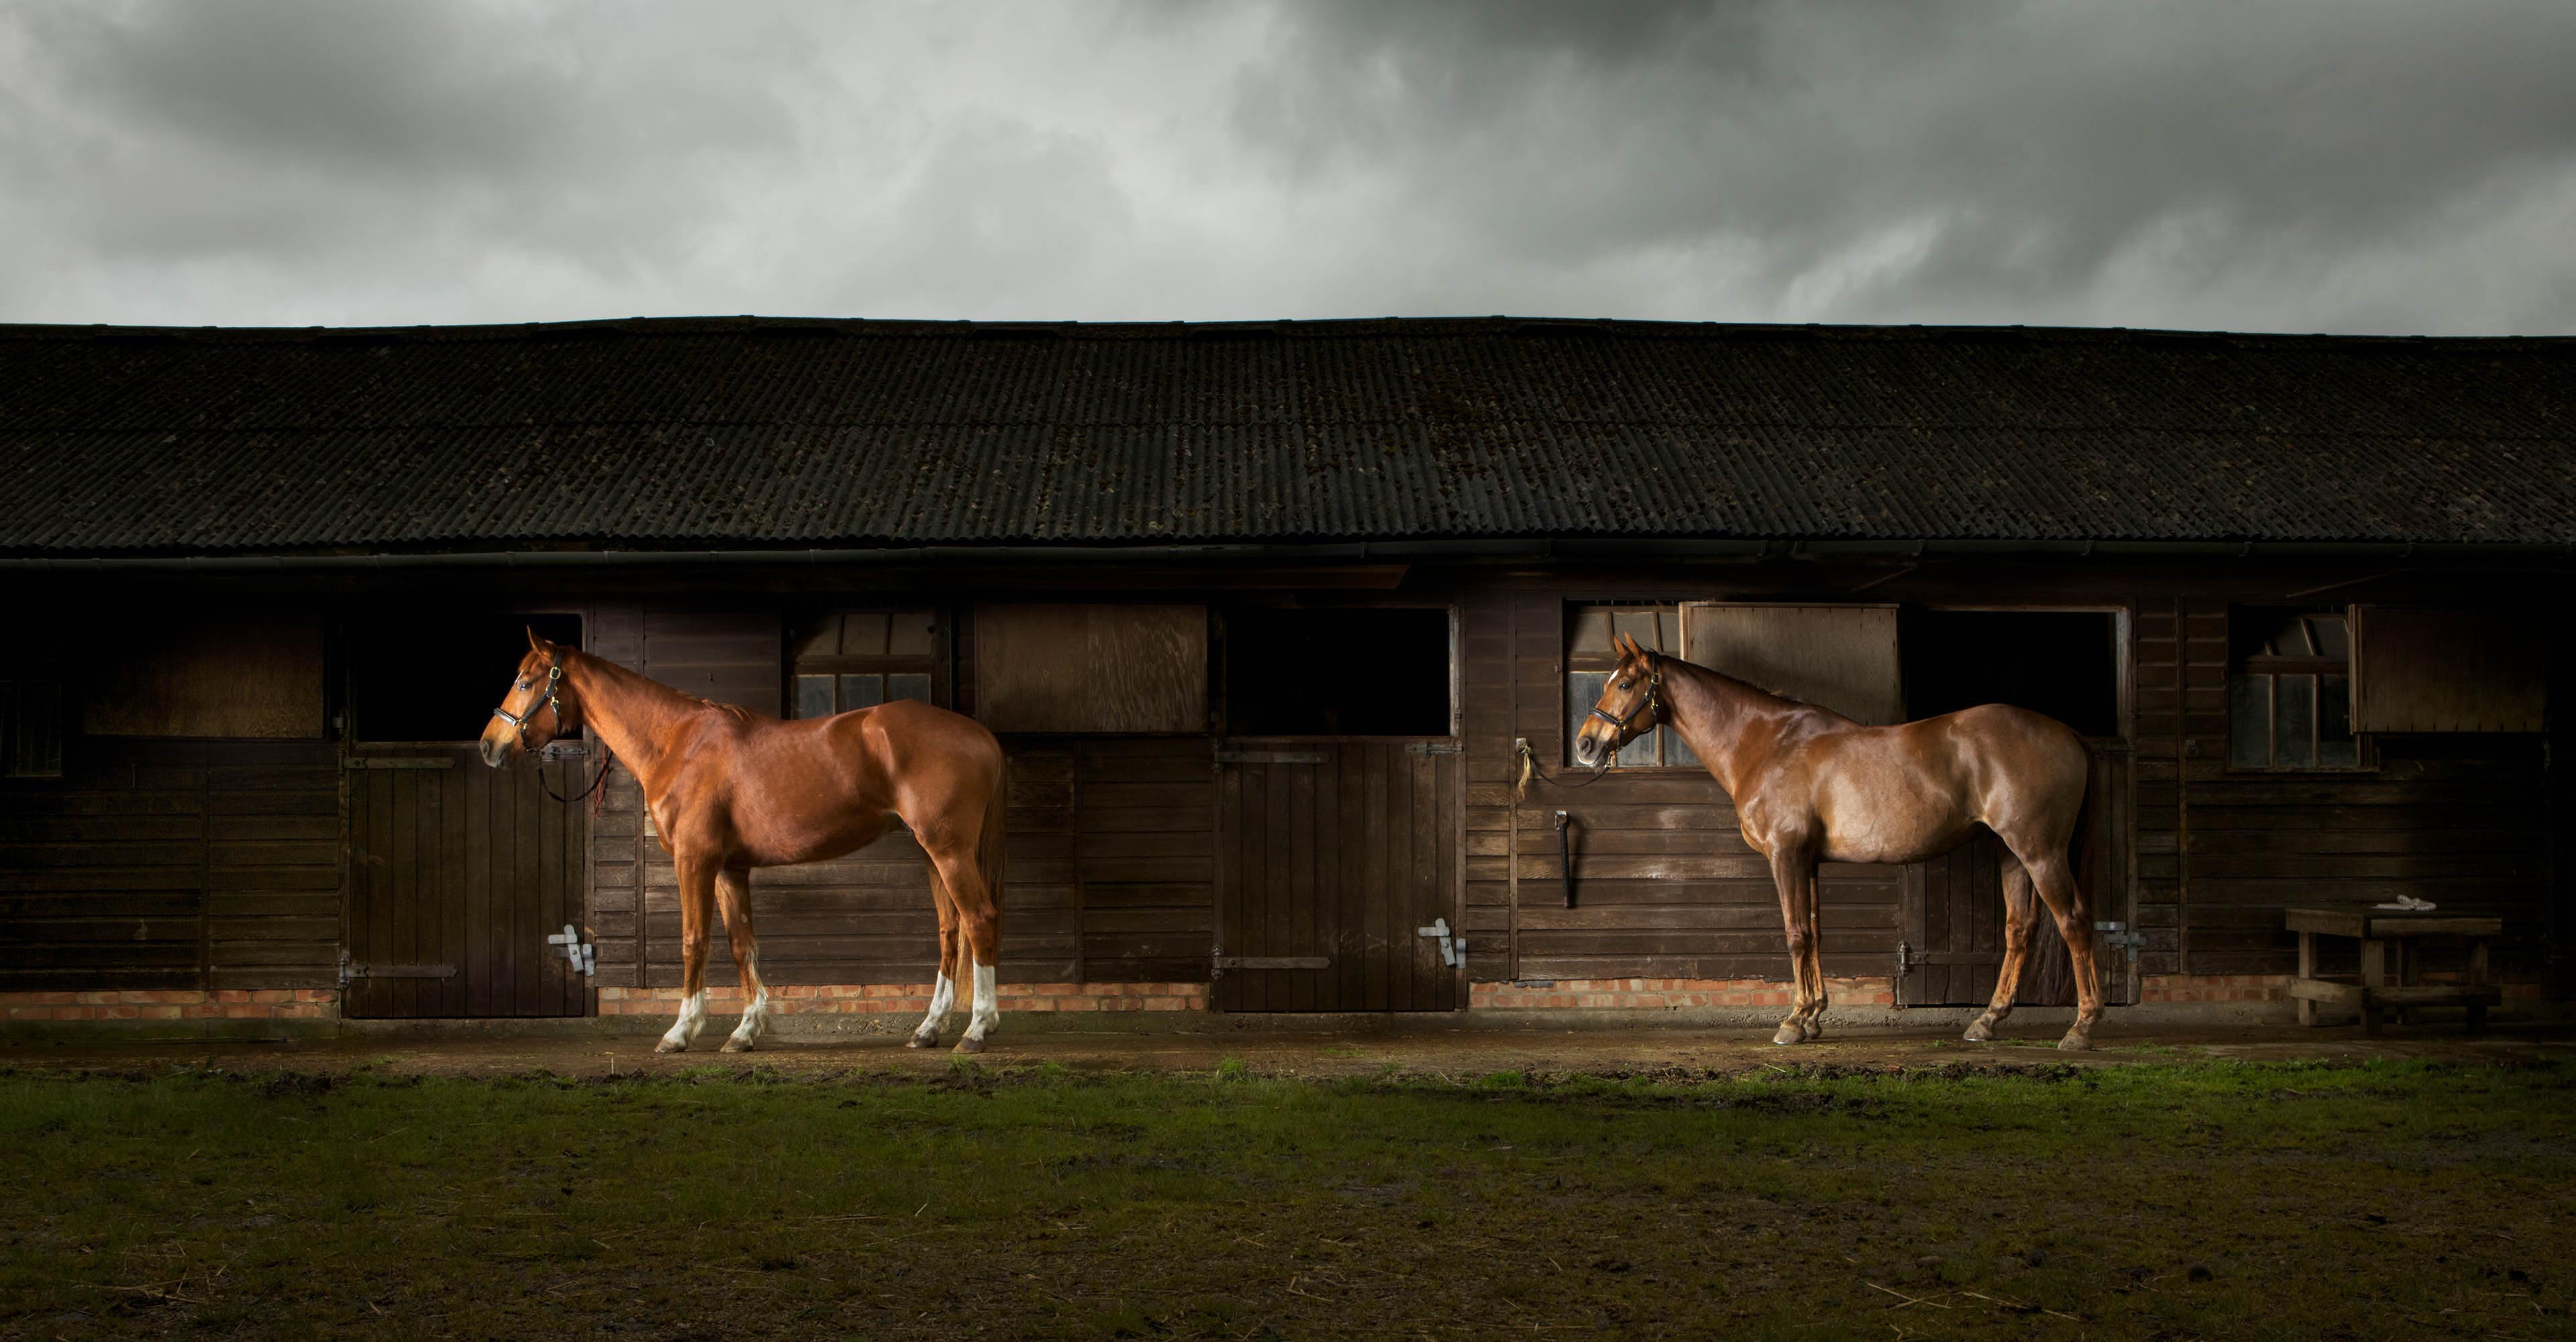 Horses by Stables